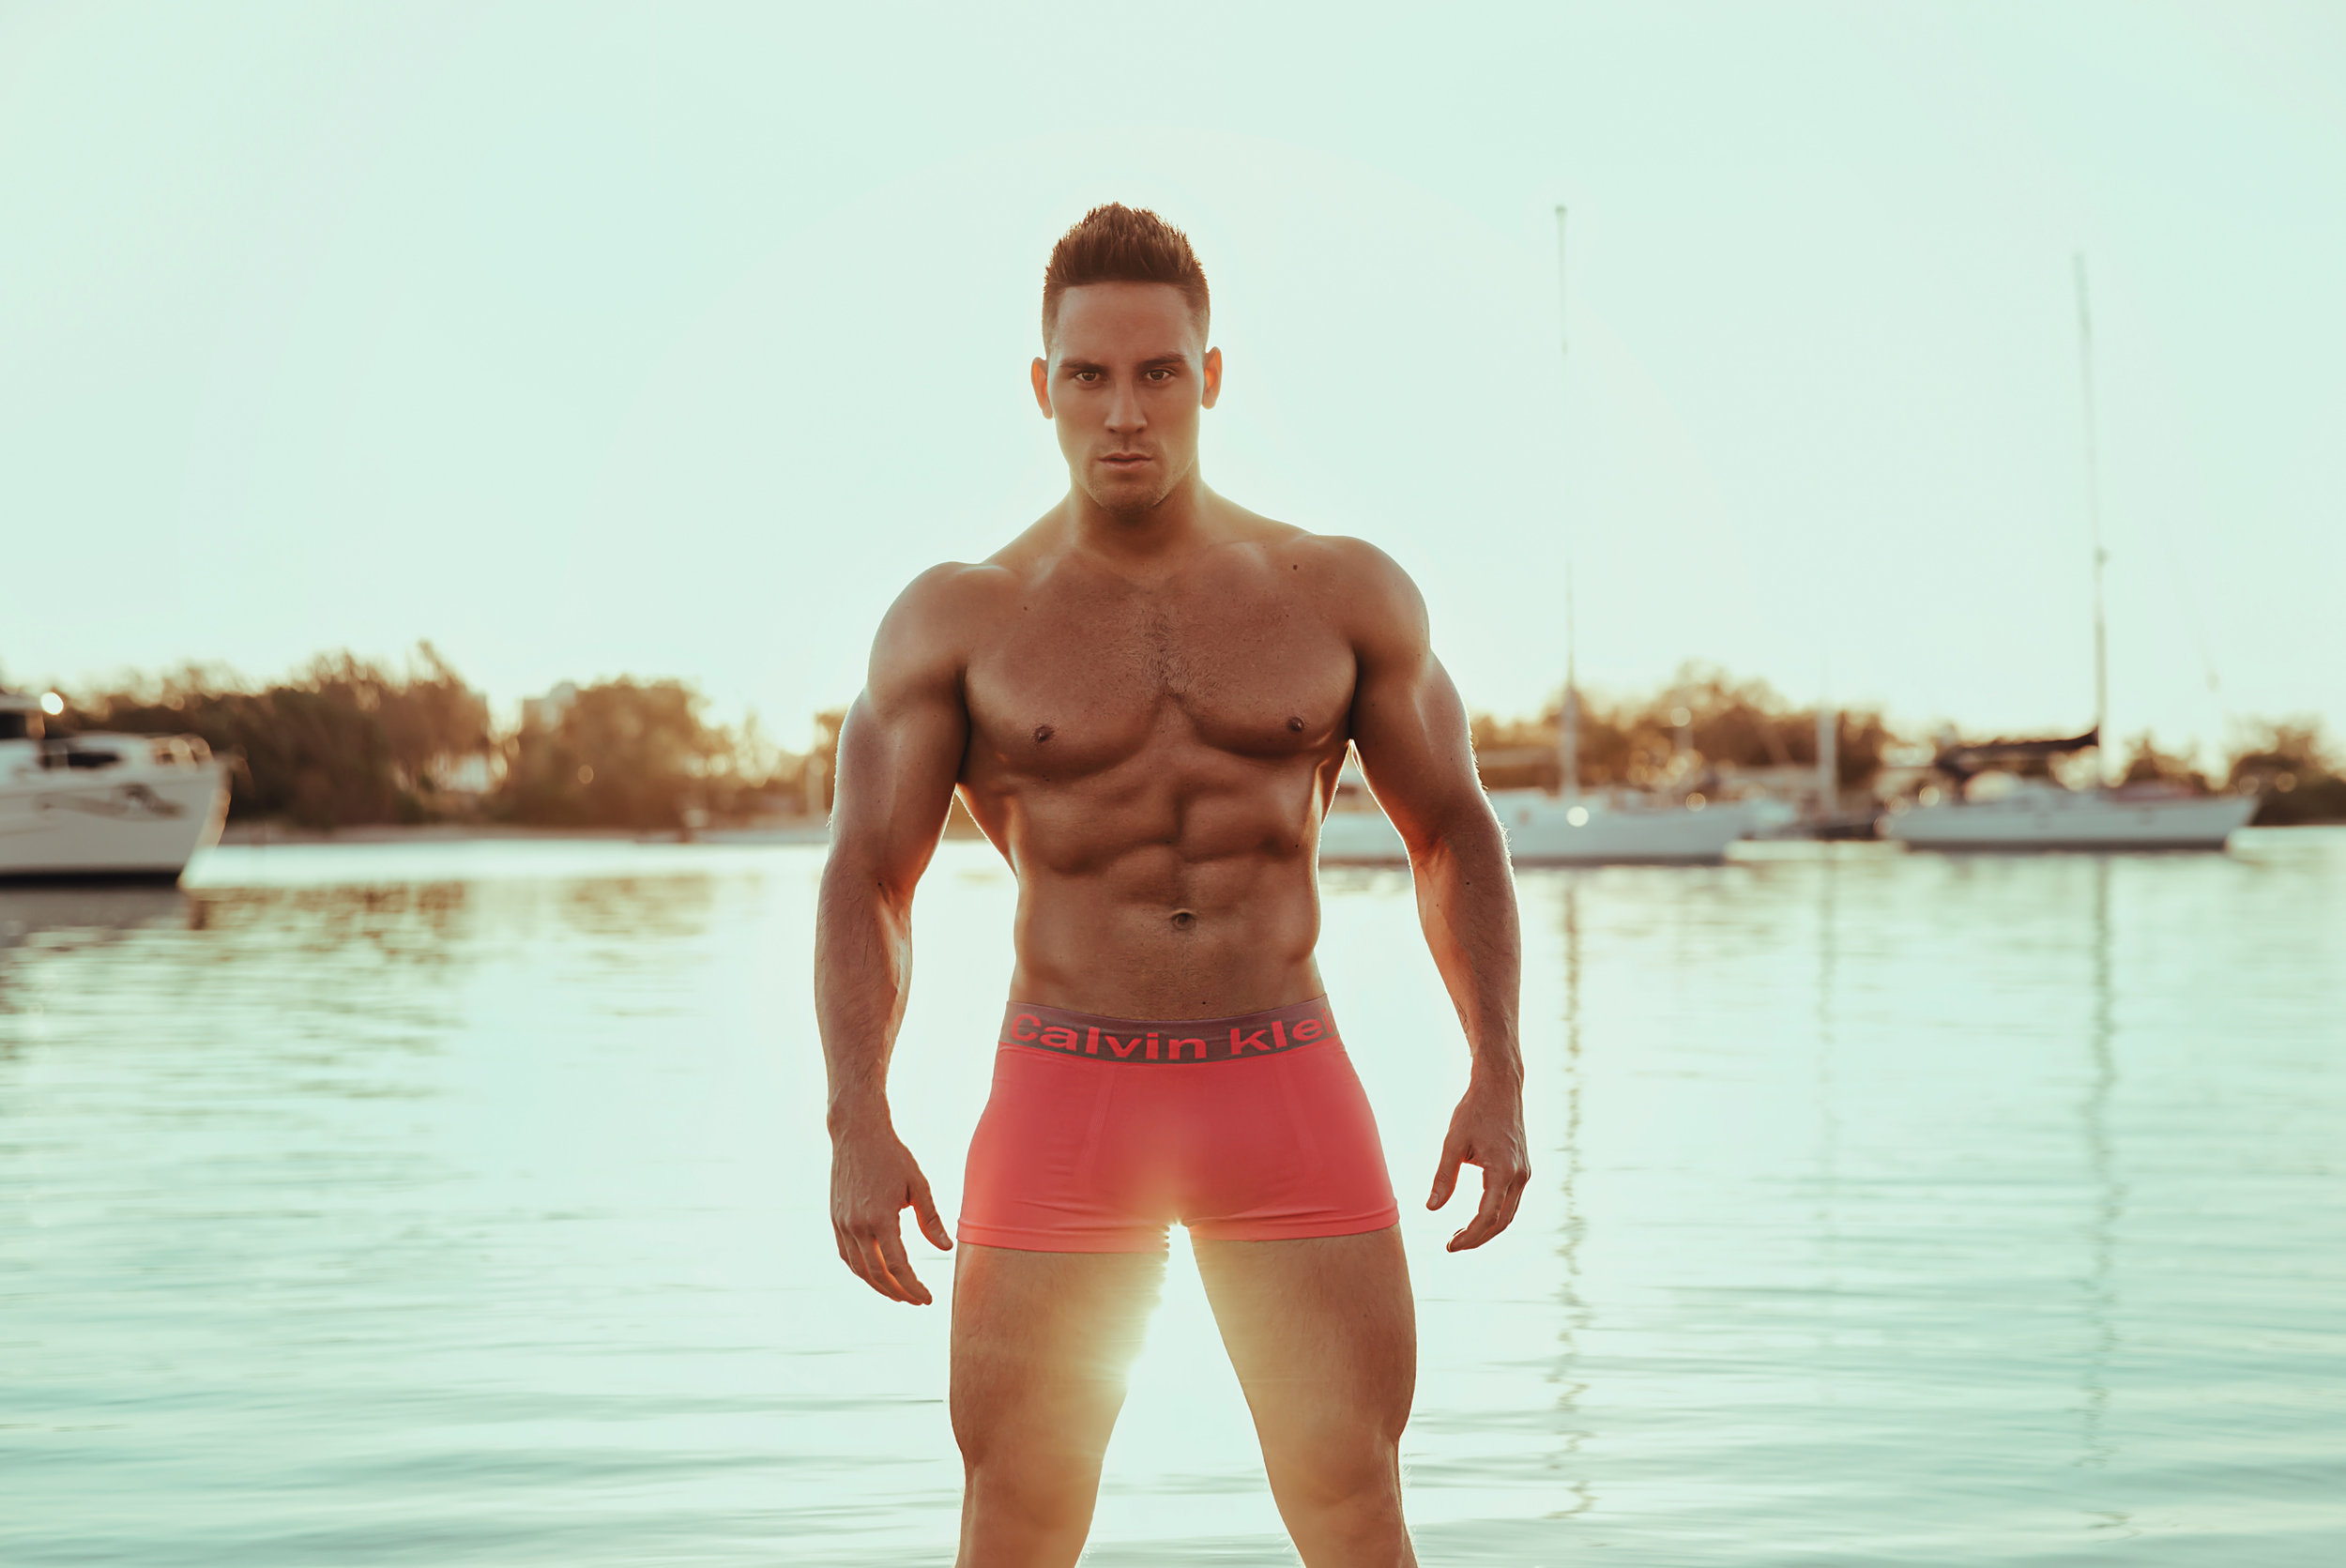 Tommy Gun Male Stripper Brisbane